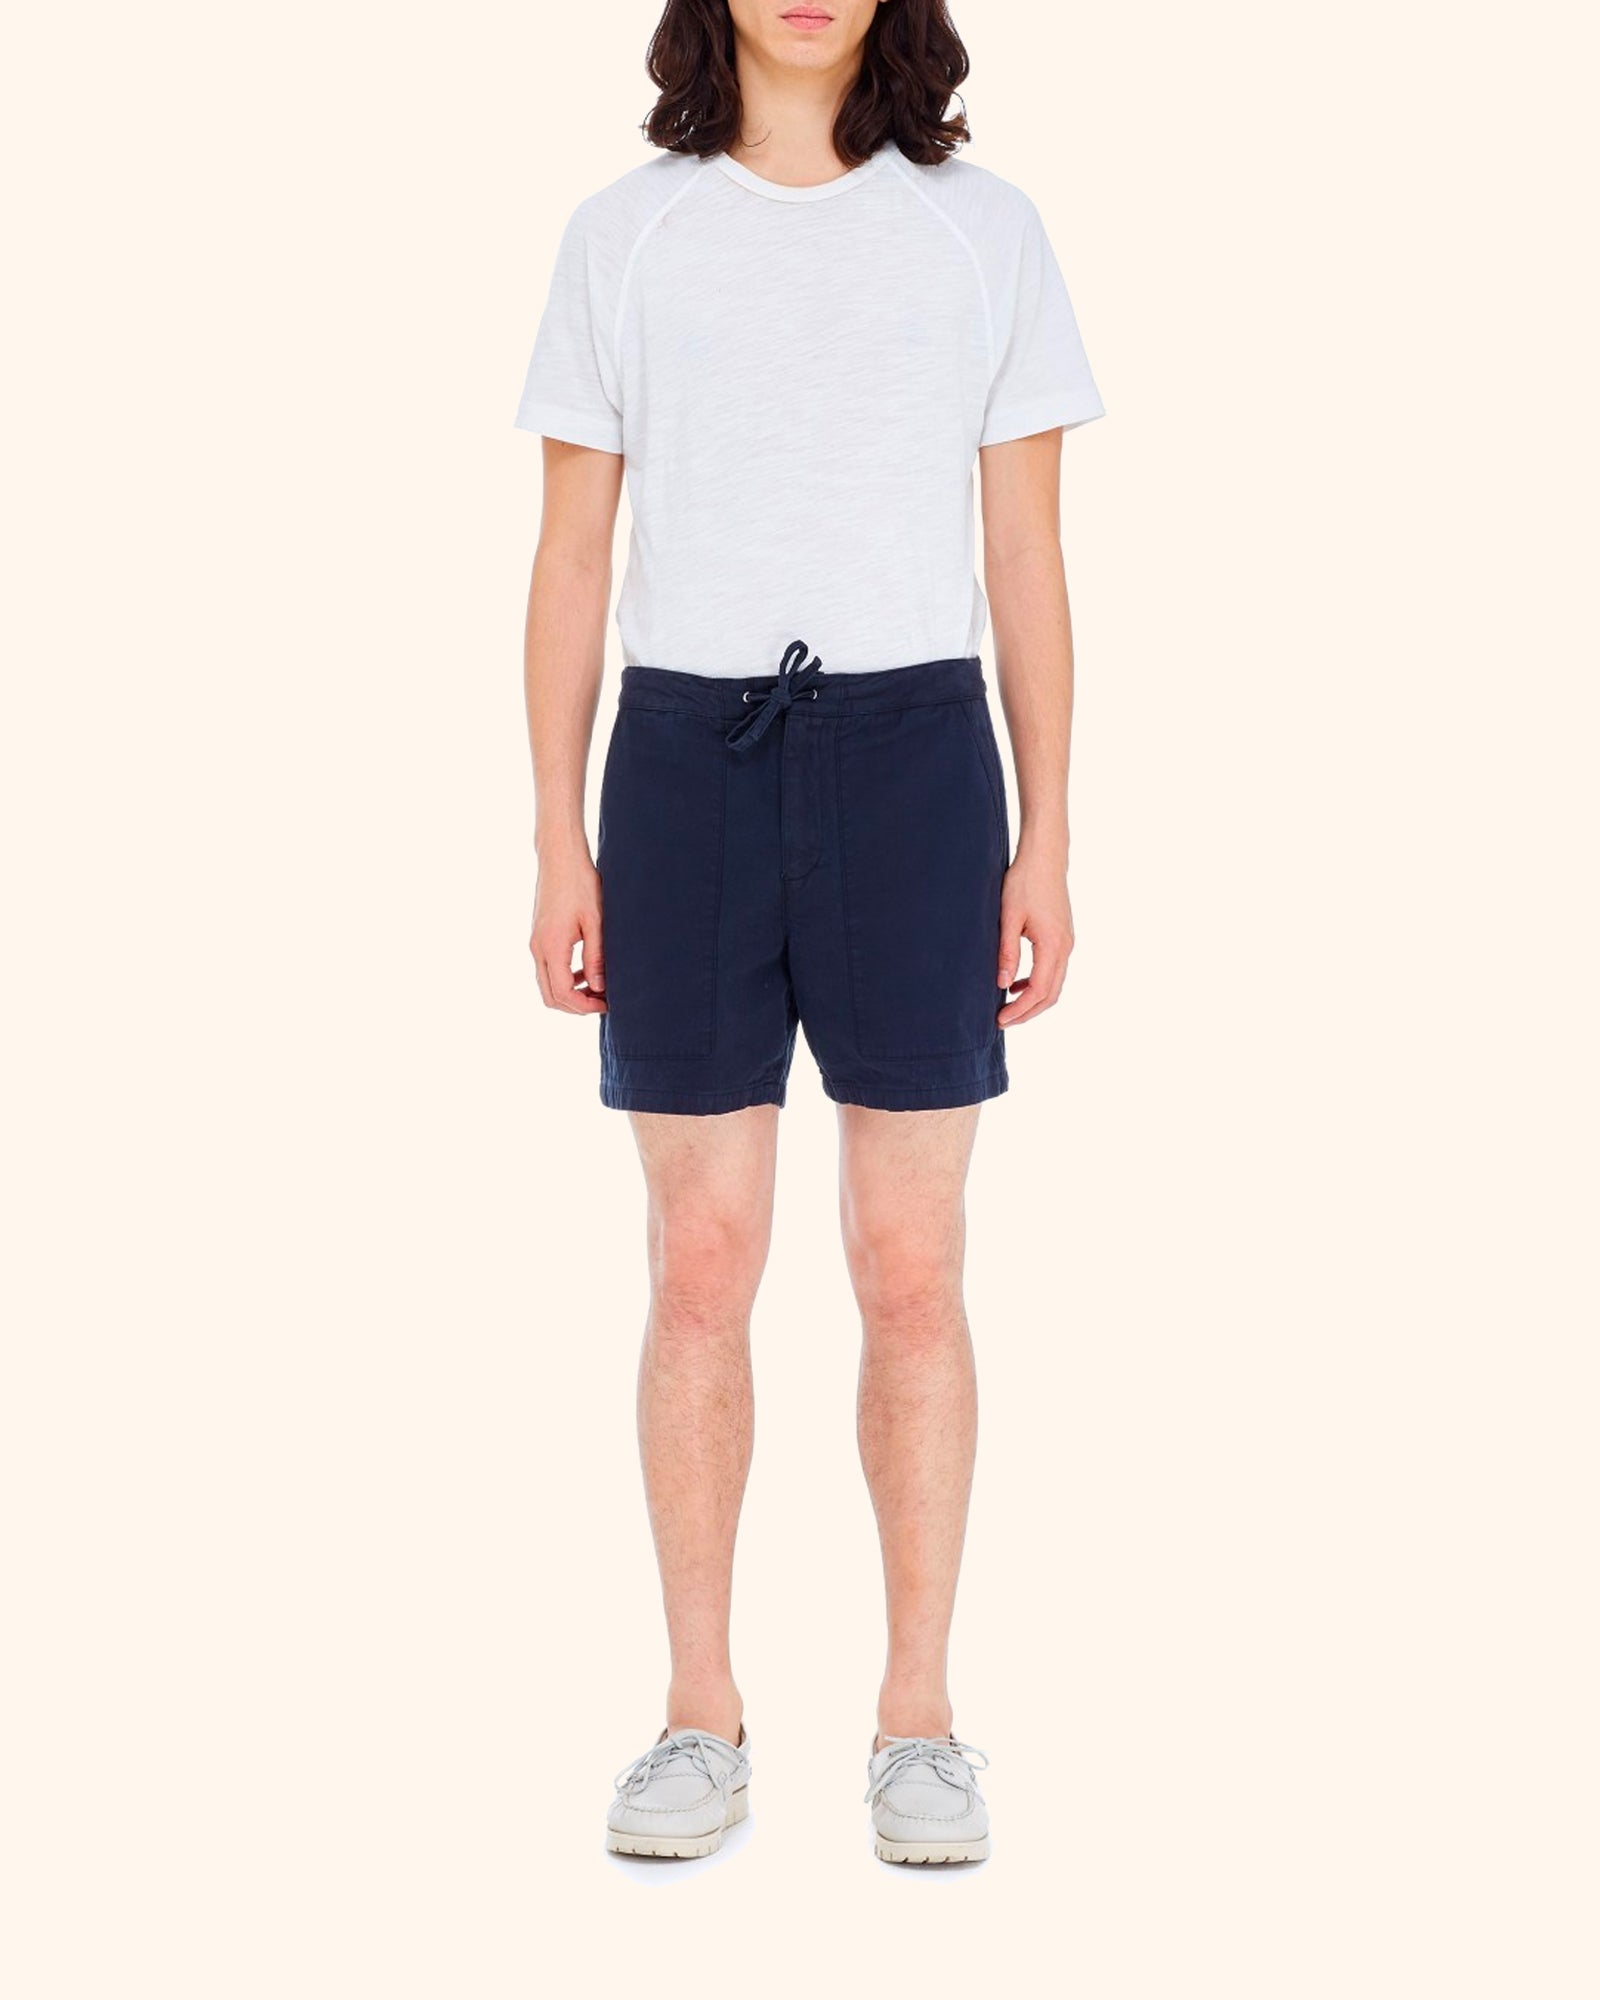 You Must Create Nam Shorts, Navy